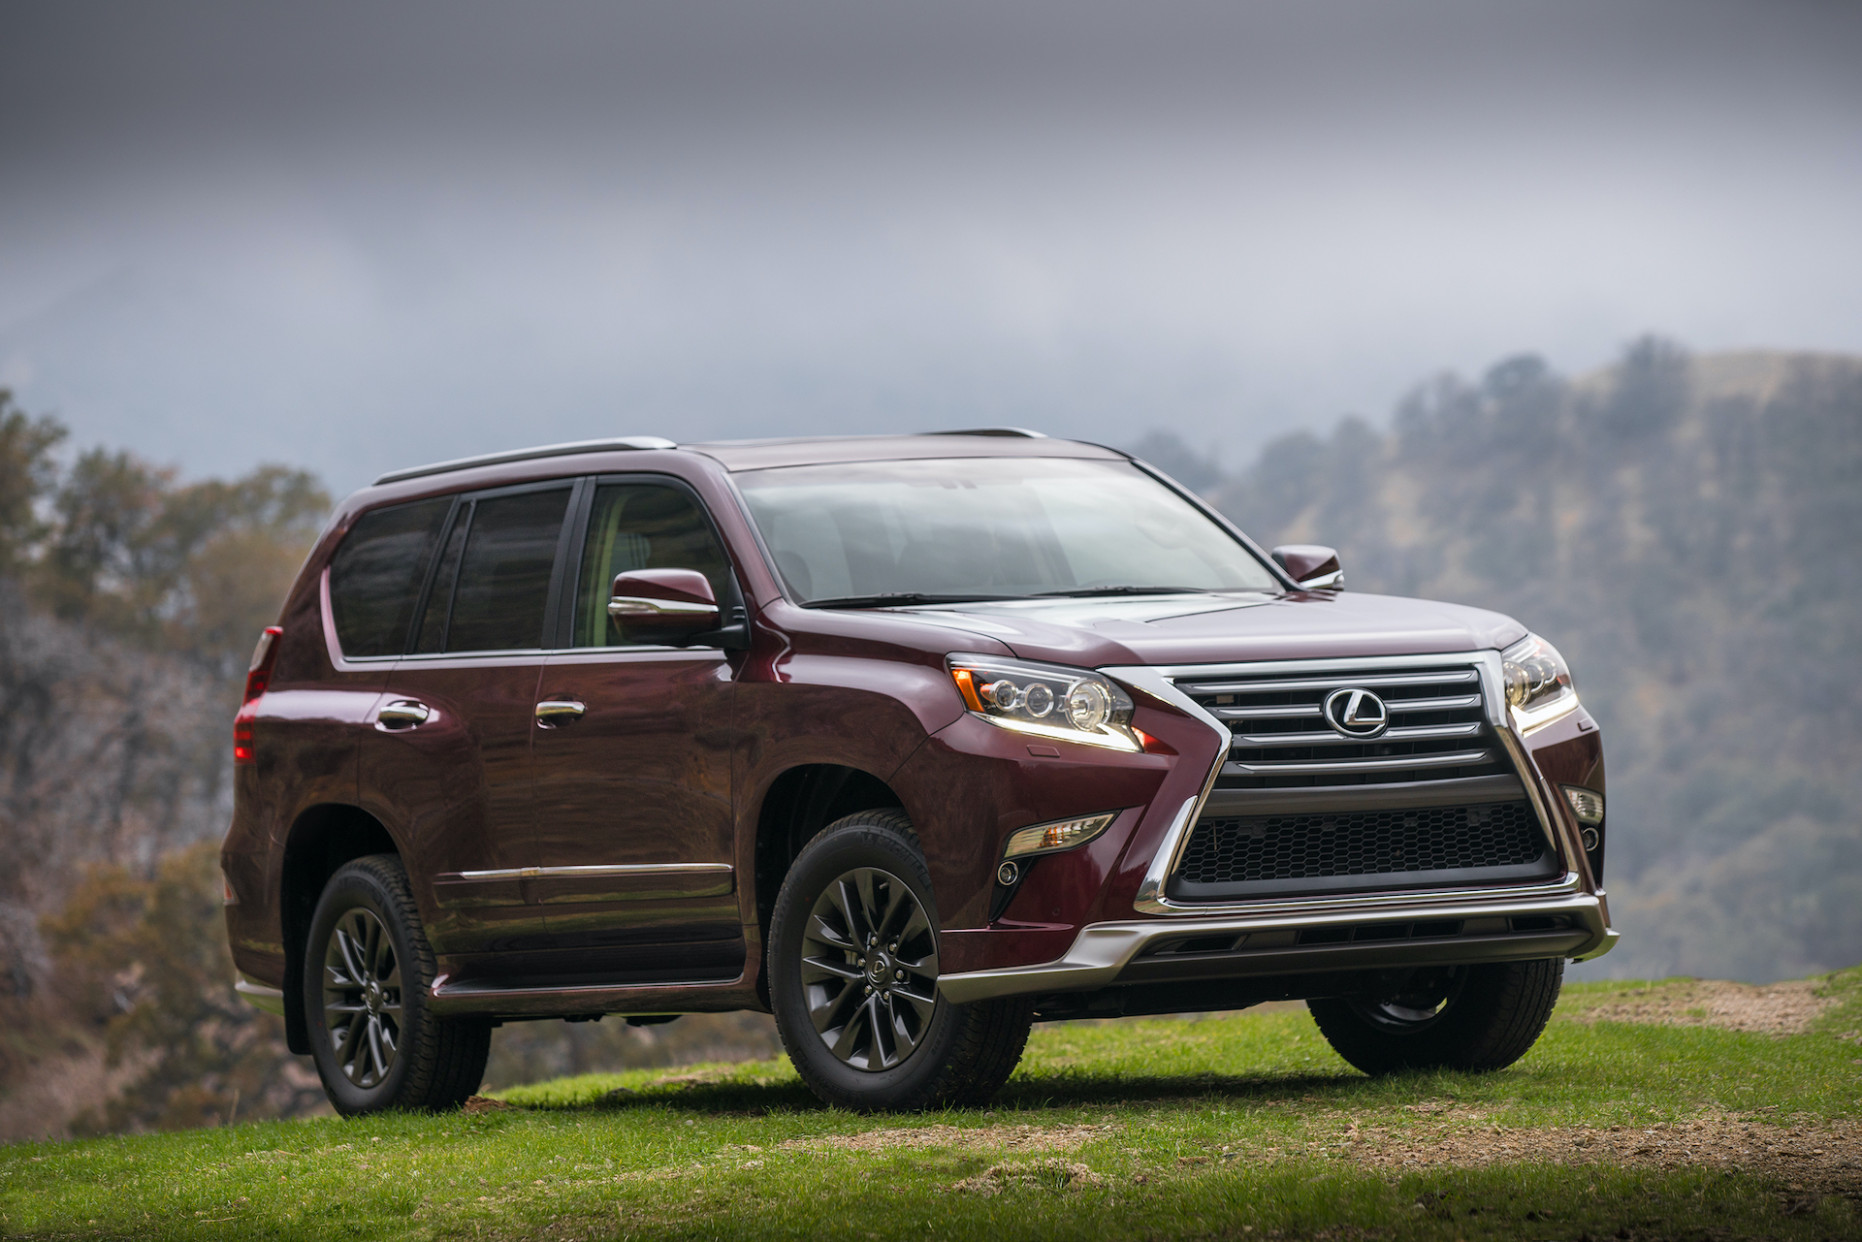 7 Lexus GX Review, Ratings, Specs, Prices, and Photos - The Car ..